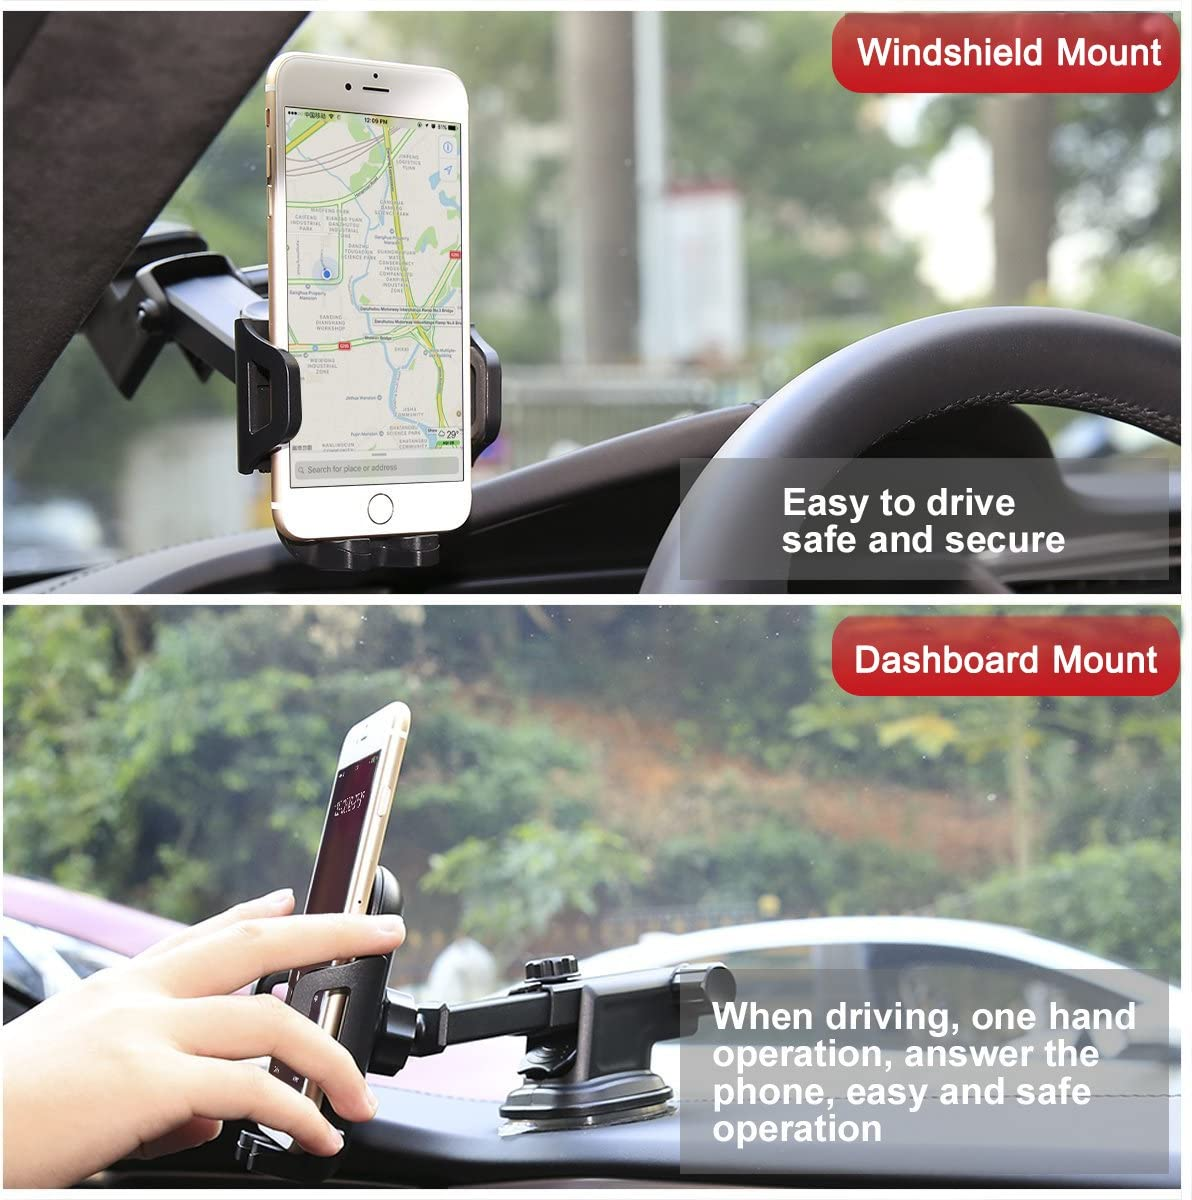 Air Vent Car Mount Electronics Universal Smartphone Car Air Vent Mount Holder Cradle Compatible with iPhone Xs Max X 8 8 Plus 7 7 Plus SE 6s 6 Plus 6 5s 5 4s 4 Samsung Galaxy S6 S5 LG Nexus and More